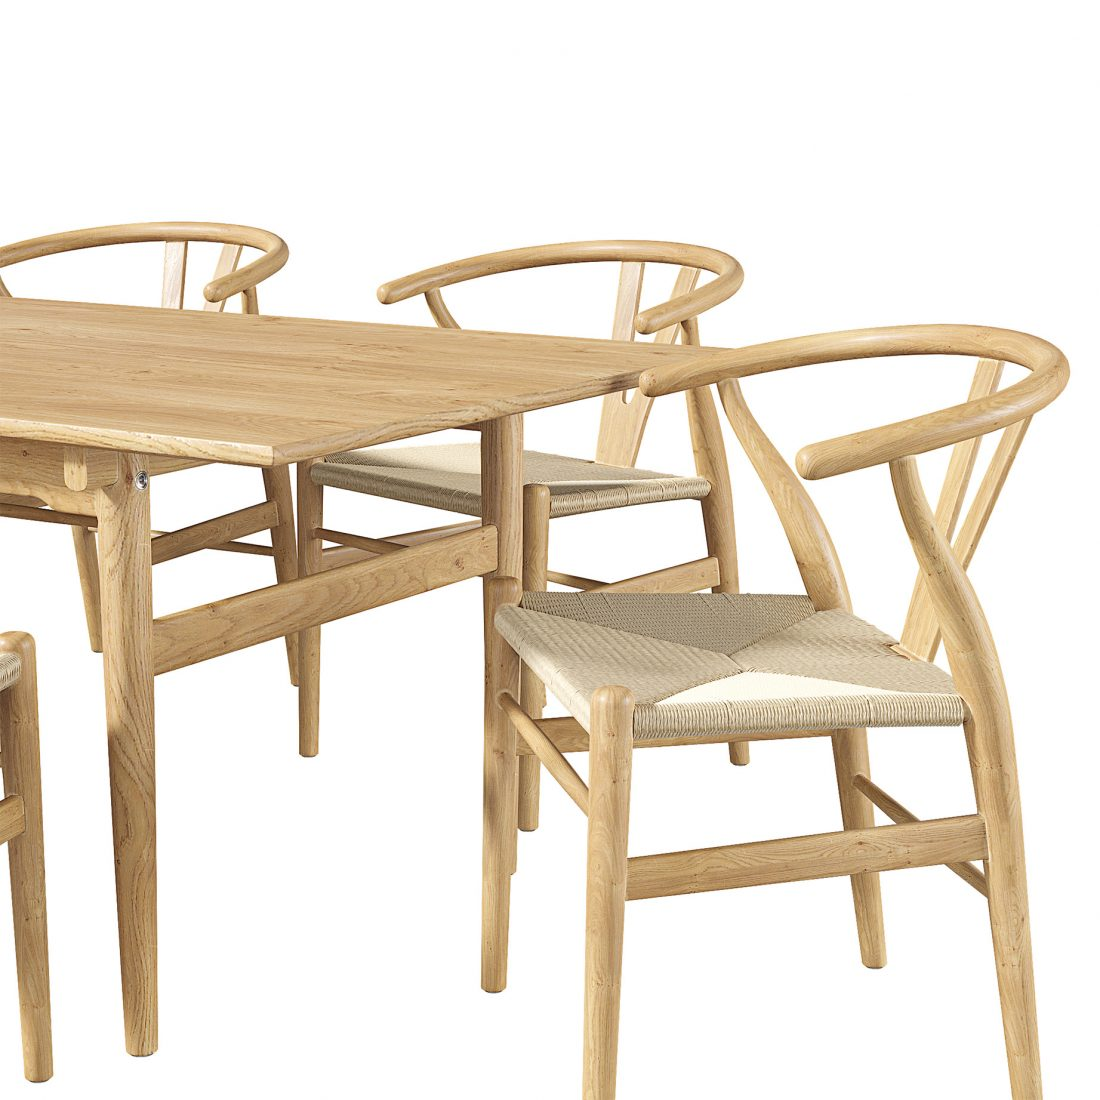 Carl Hansen Chair Ch24 Dining Table 3d Model For Vray Corona